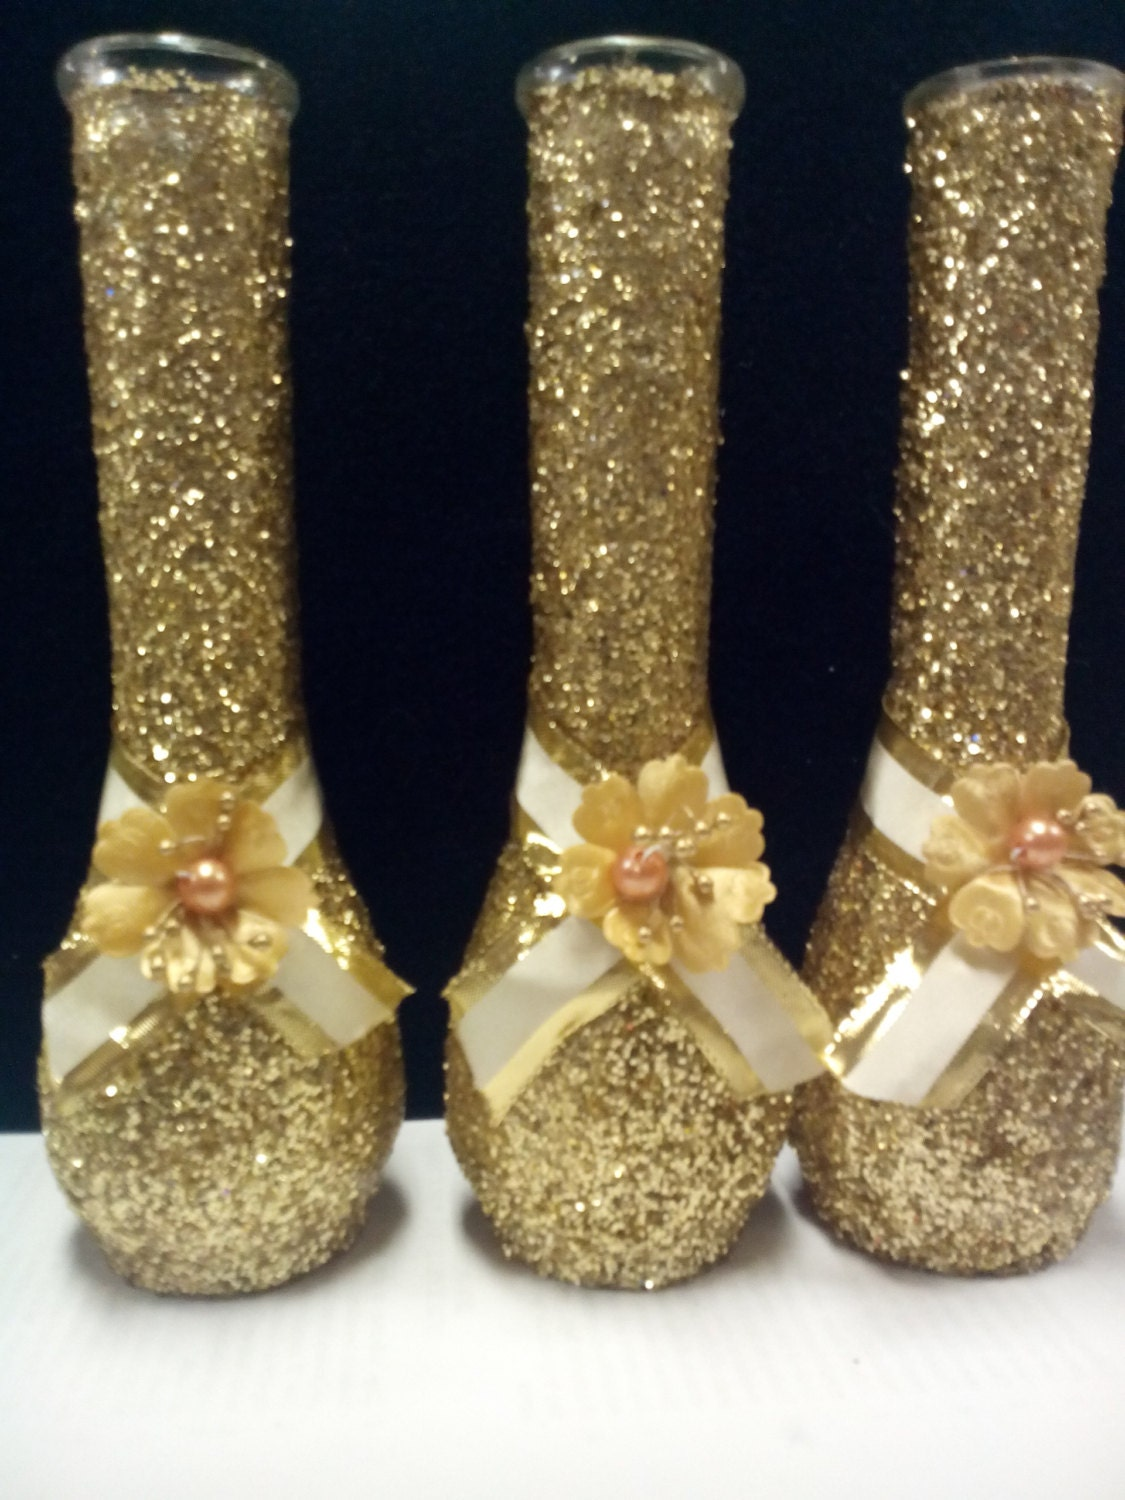 Gold glitter vase for wedding centerpiece or by